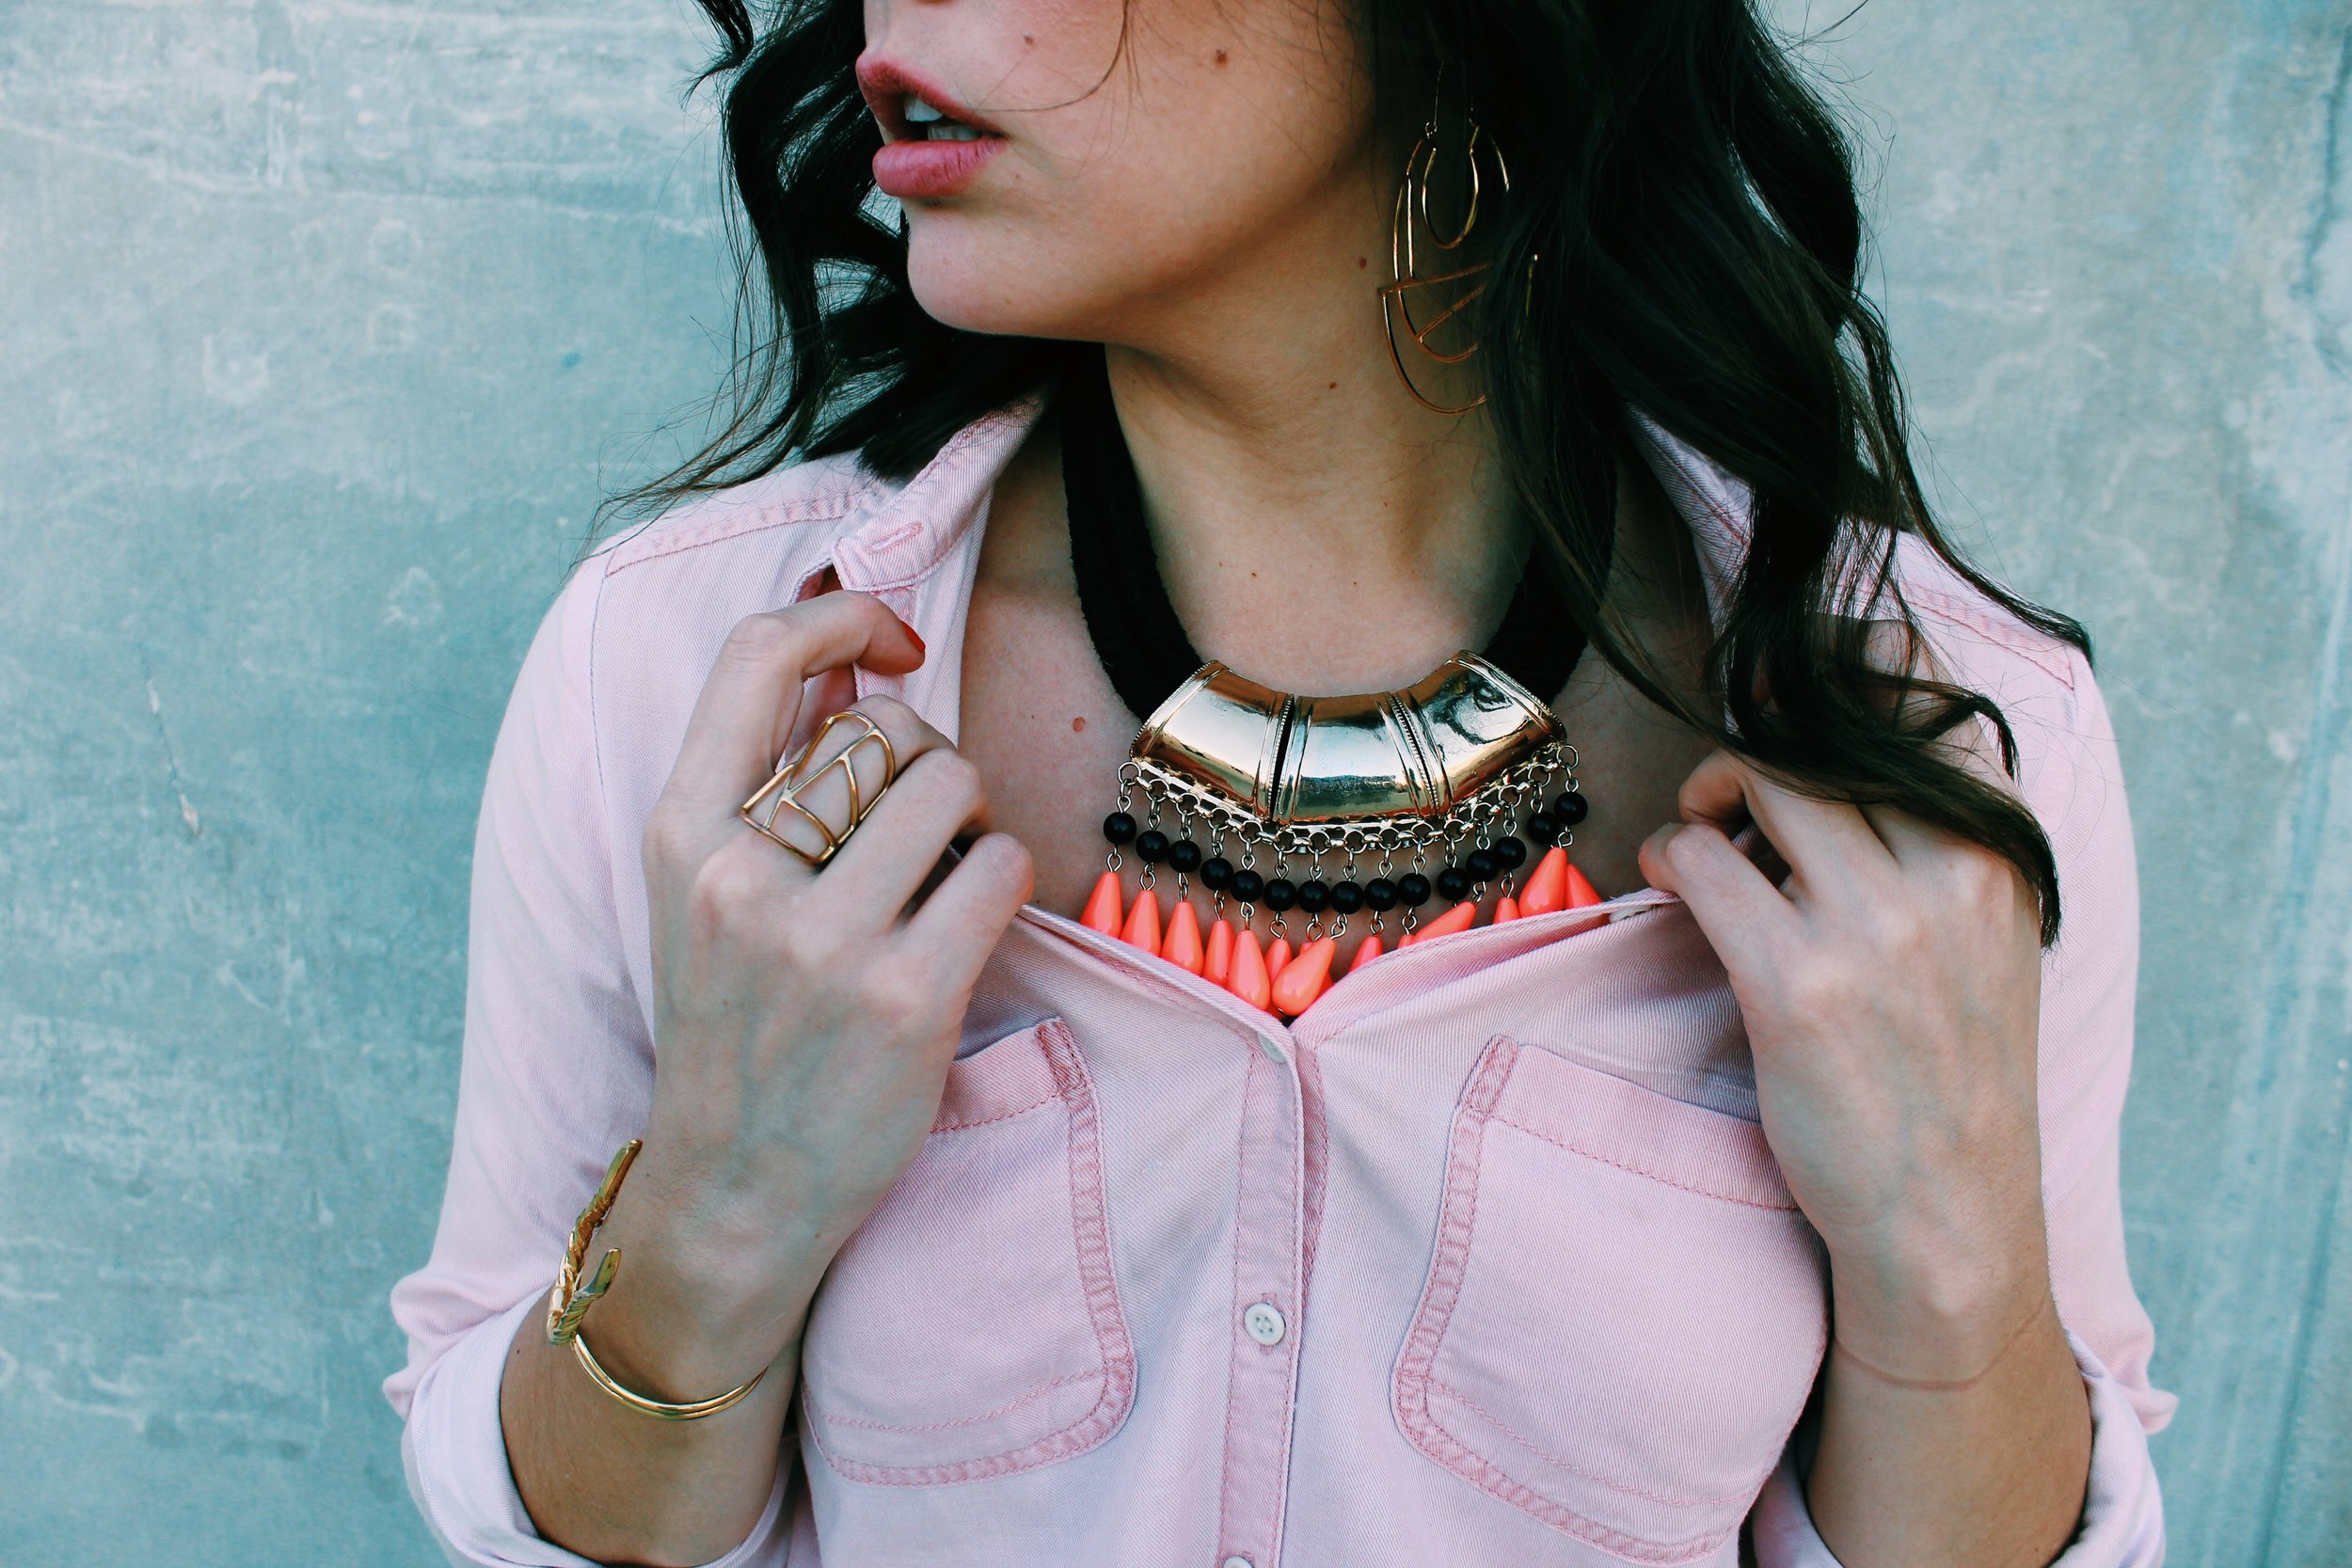 Greer Image Consulting - Blog - What To Wear To ACL - Statement Necklace - Necklace - Style - Stylish Woman